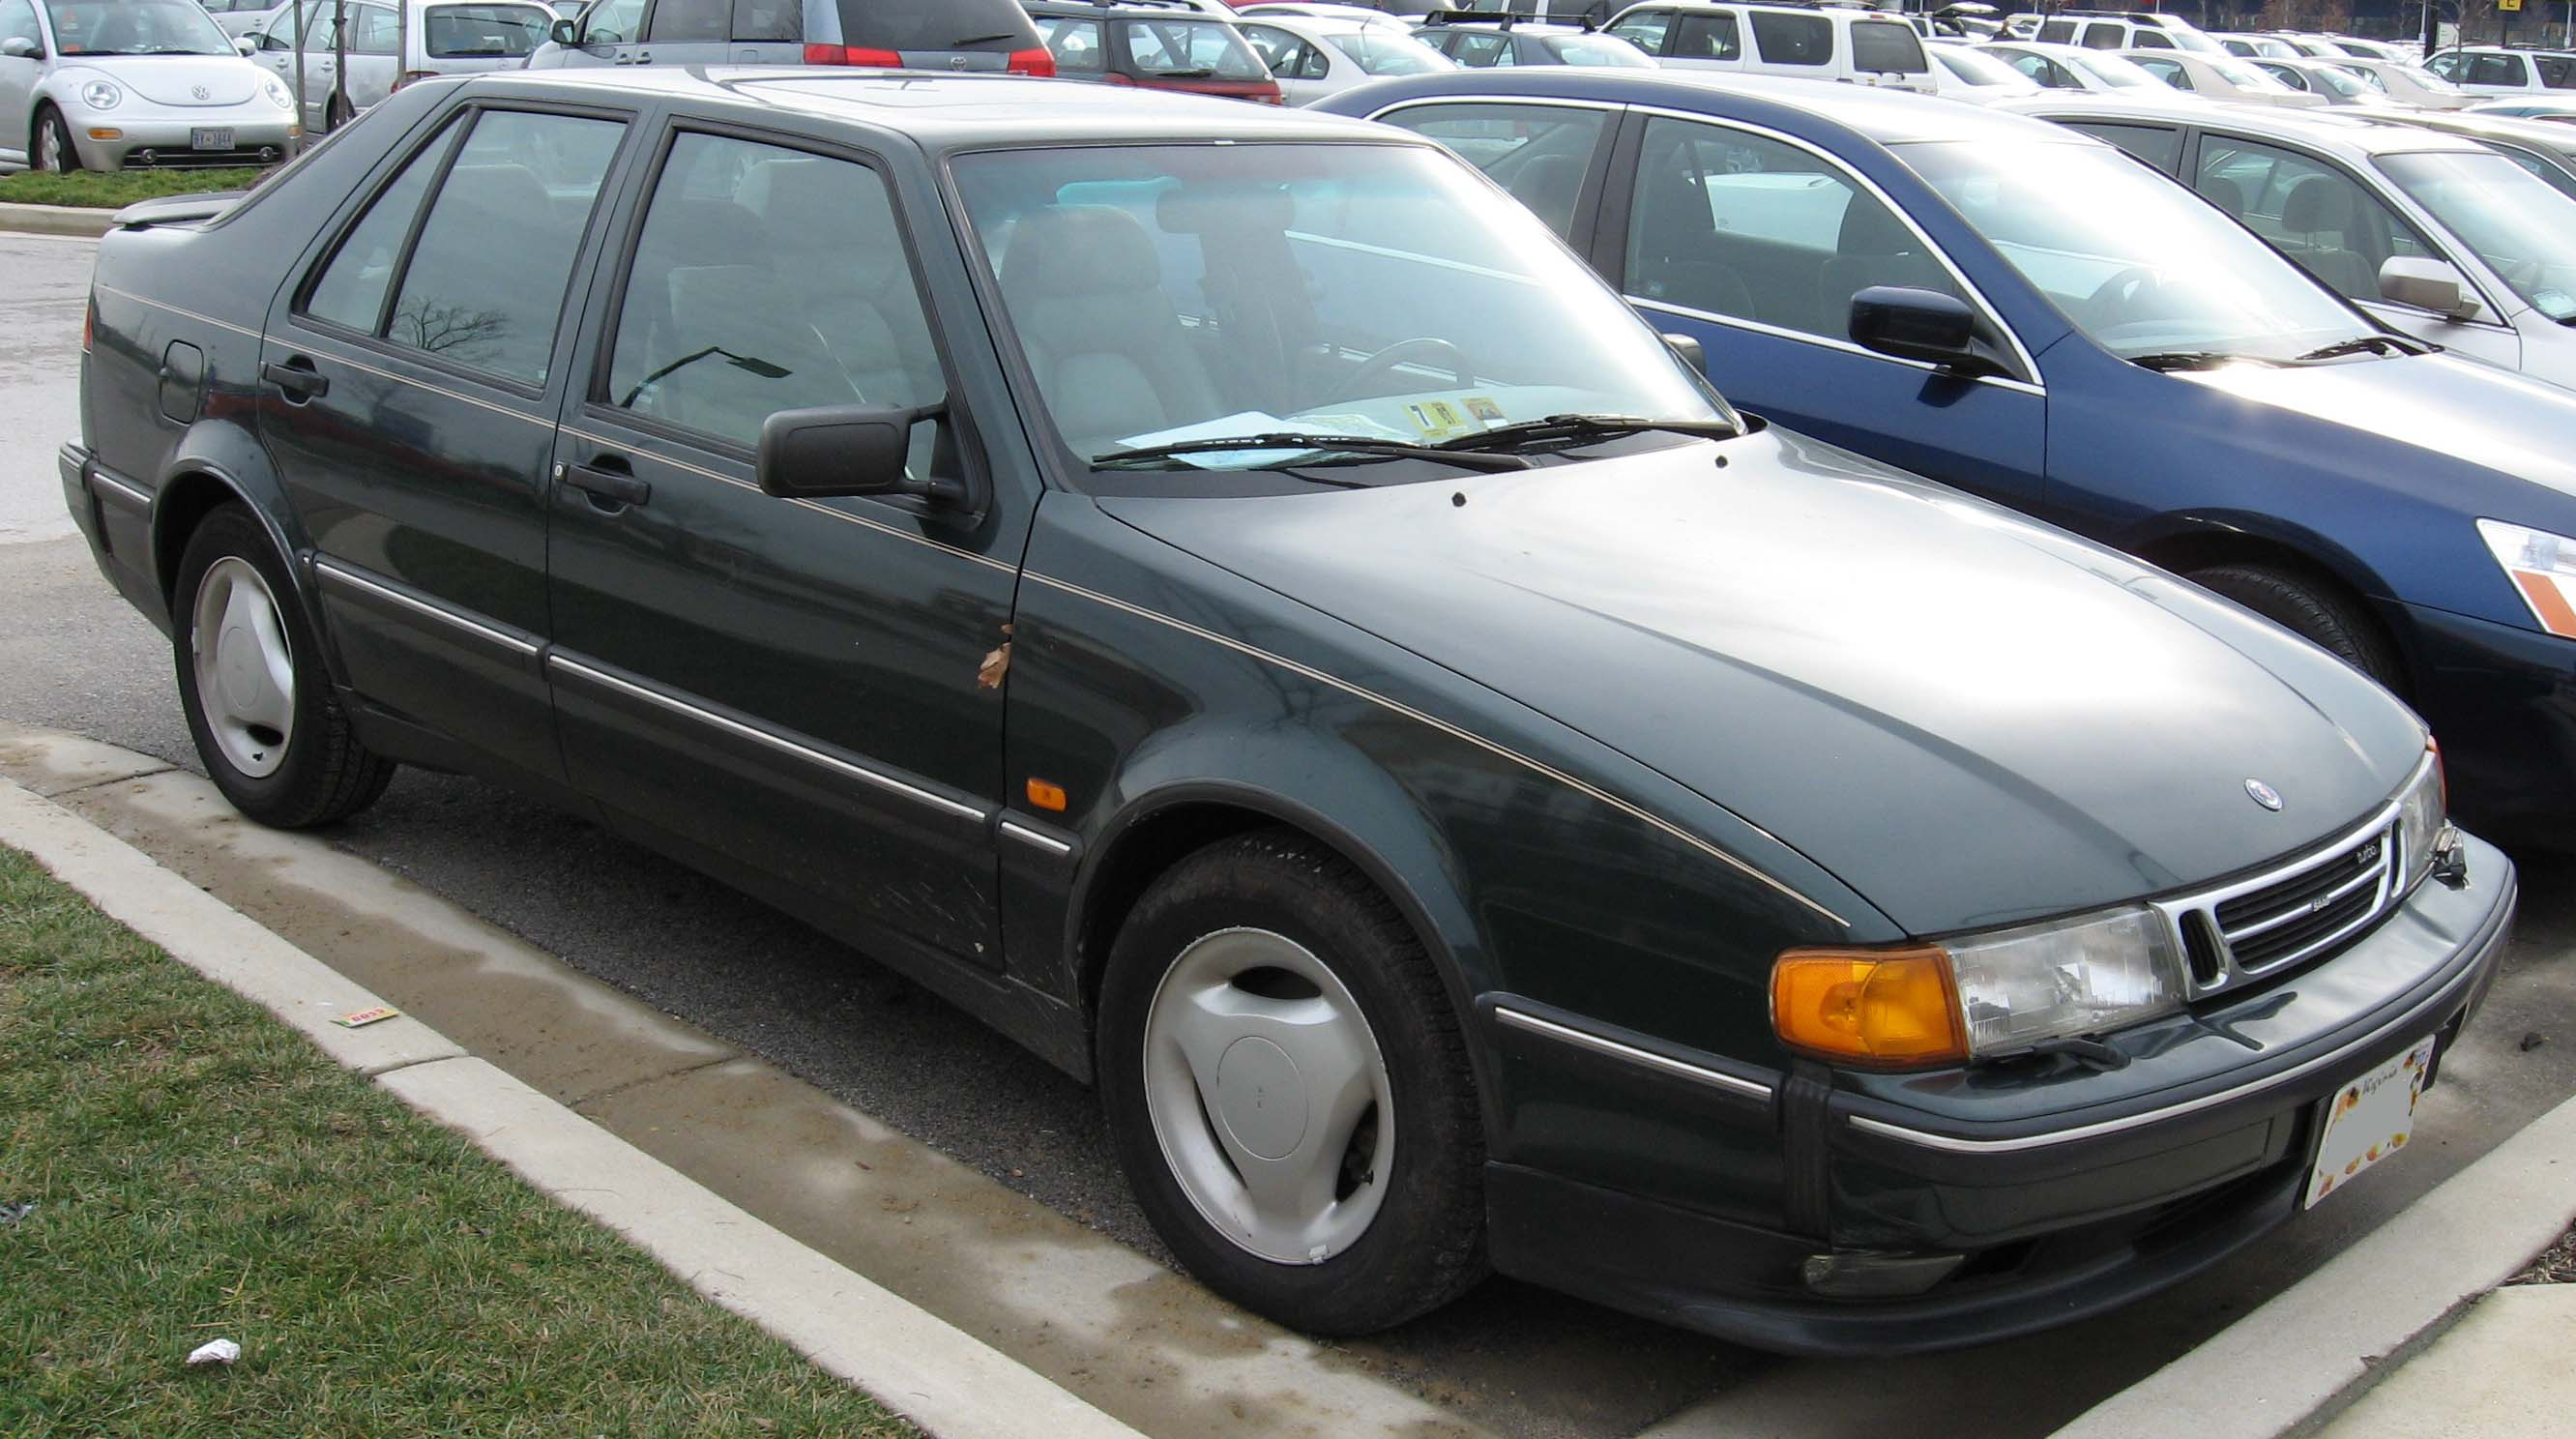 saab 9000 pictures #15